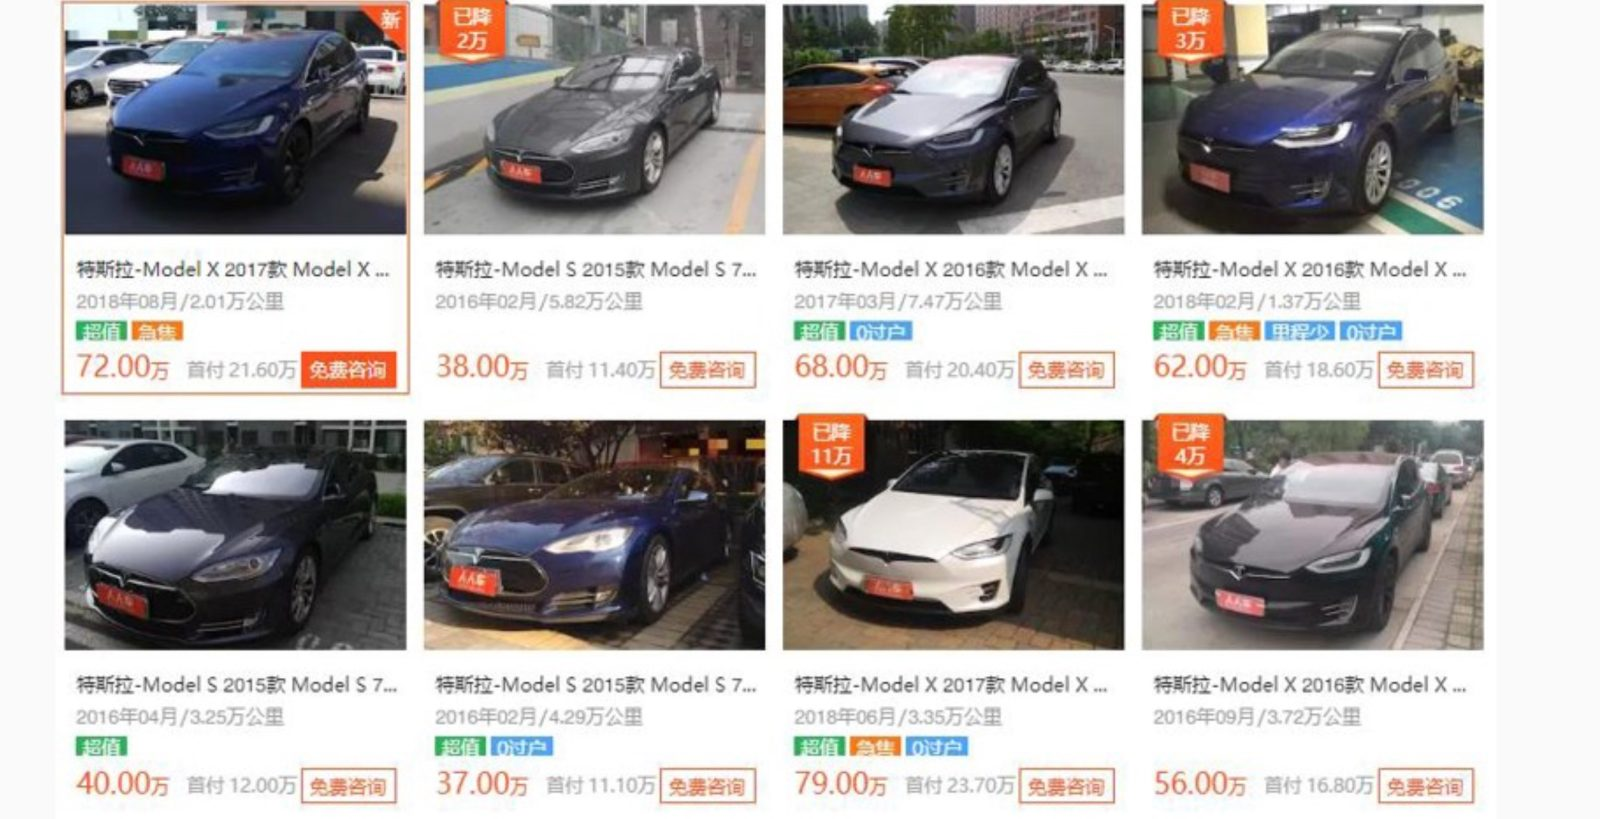 Tesla's used cars prove popular in China with impressive value retention